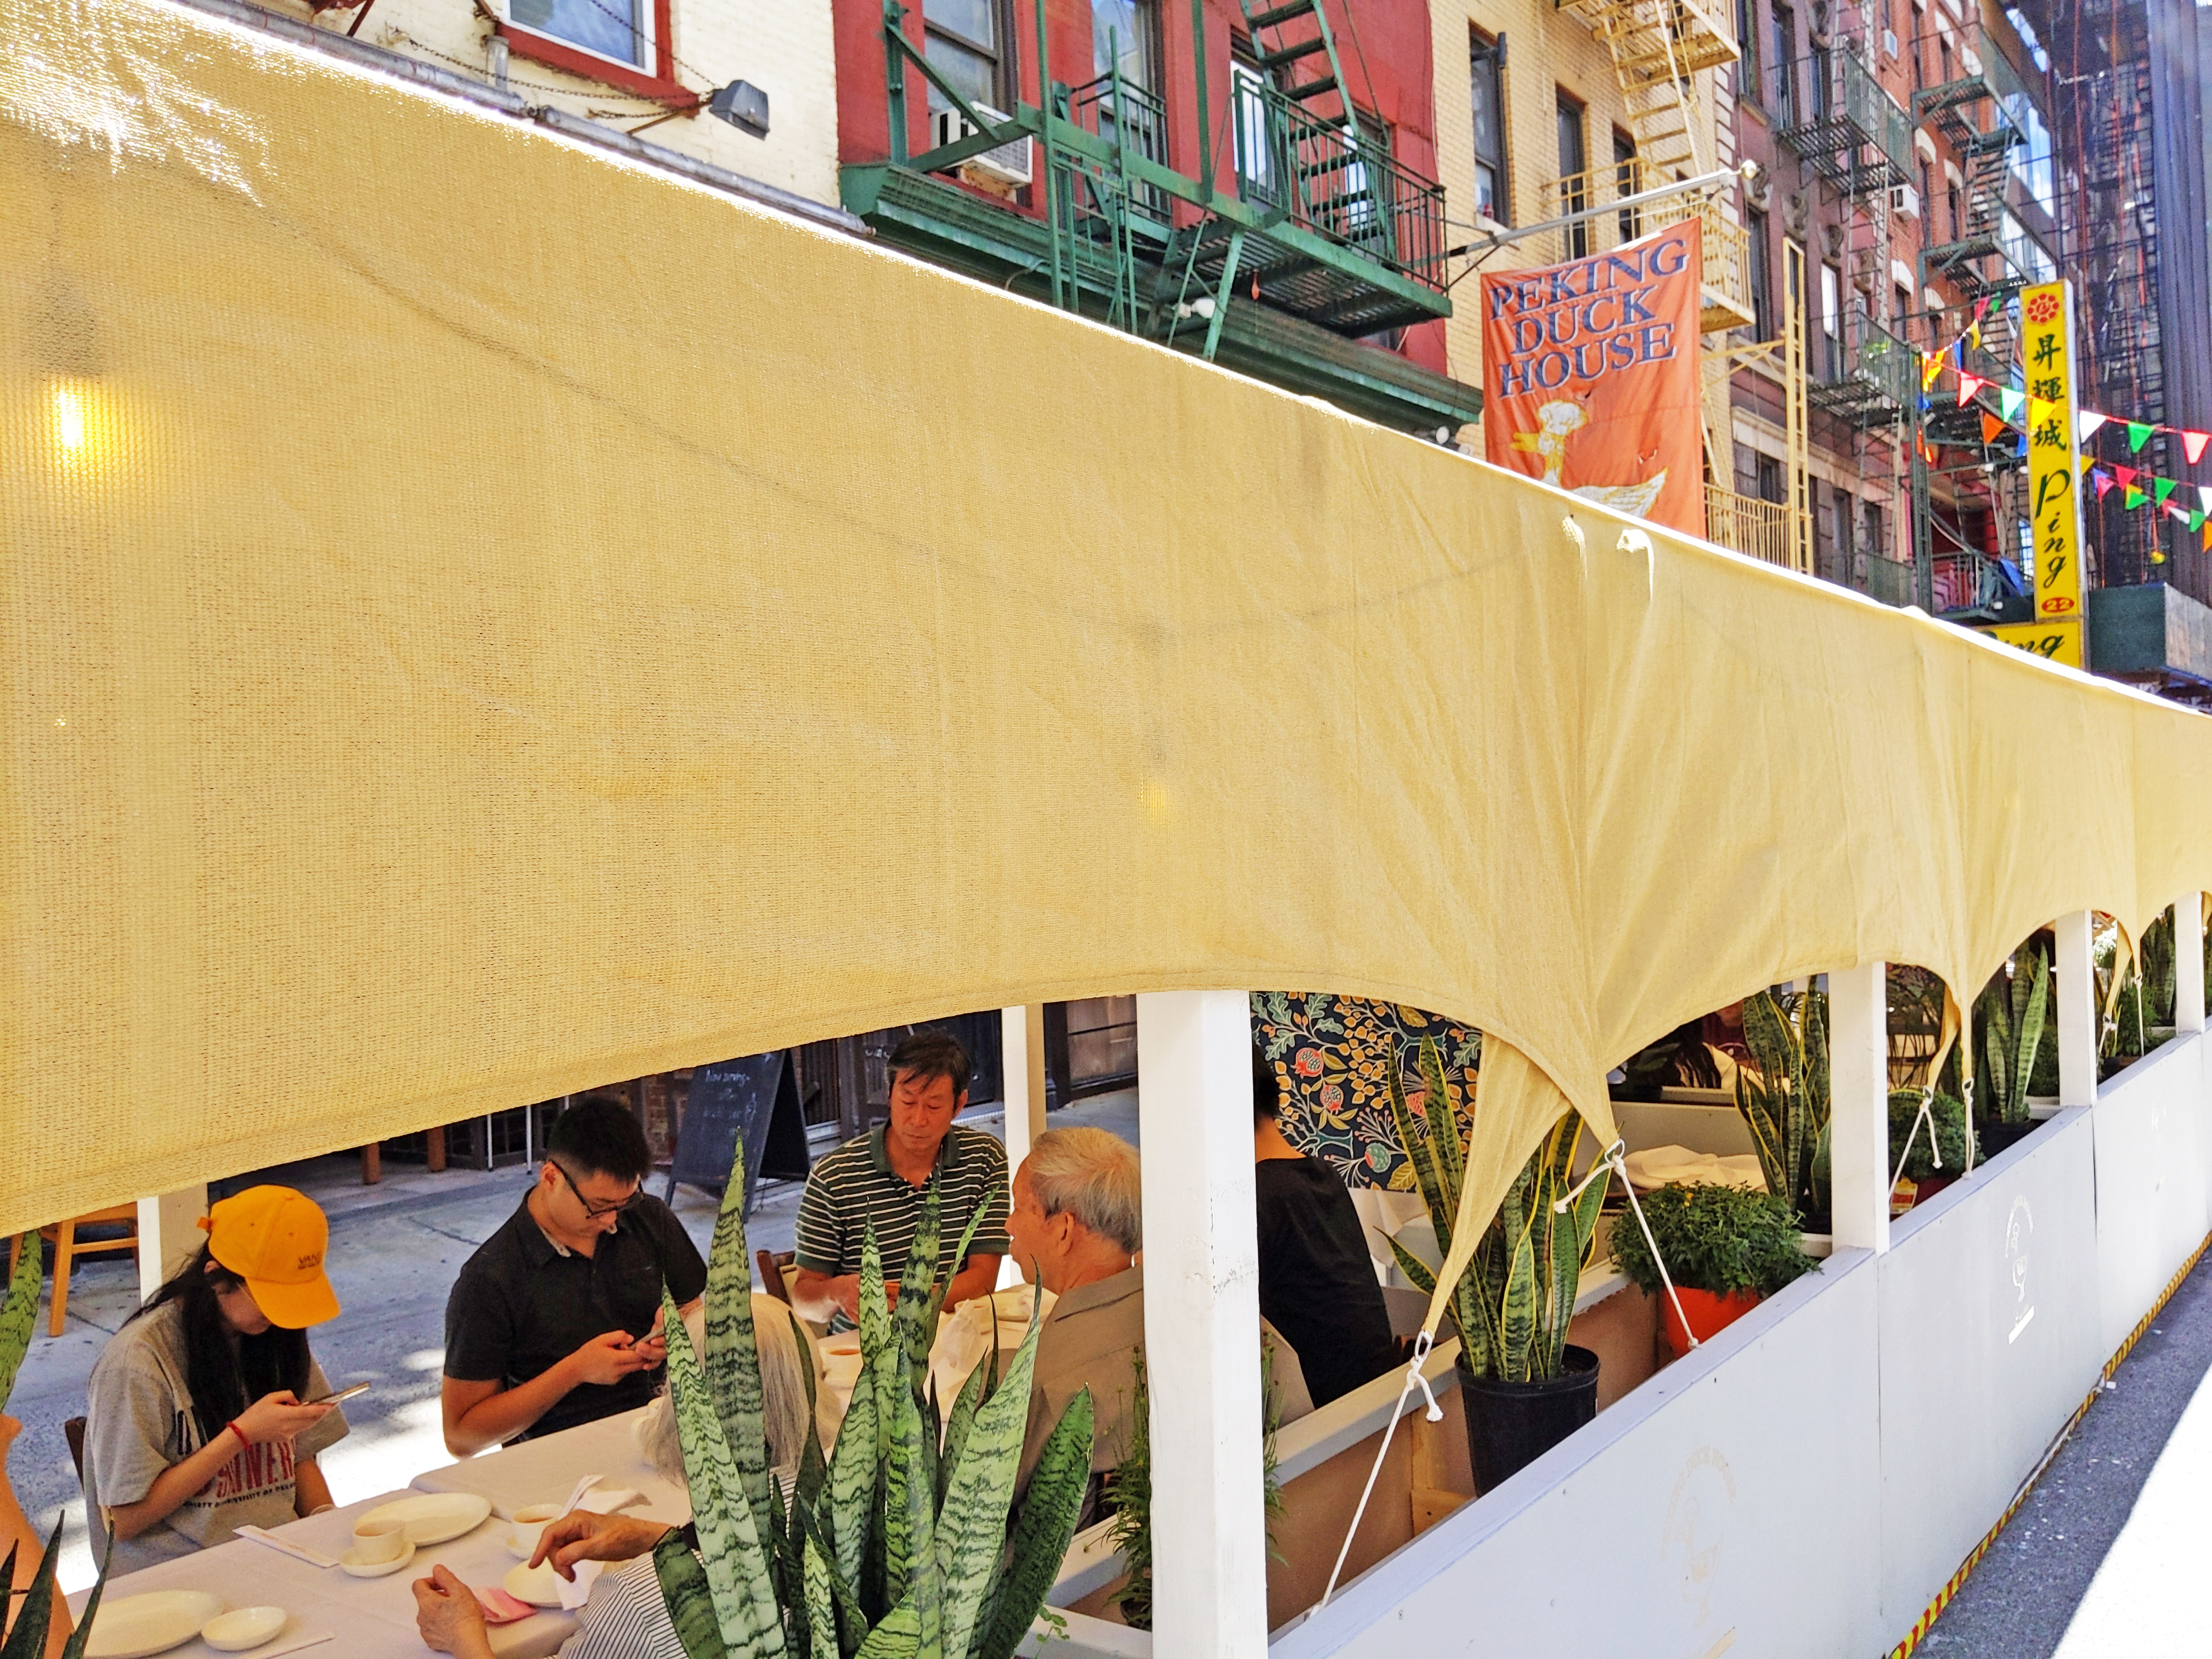 A yellow awning protects the tables in an outdoor seating area in the foreground while the sign of the restaurant featuring a duck is visible in the background.